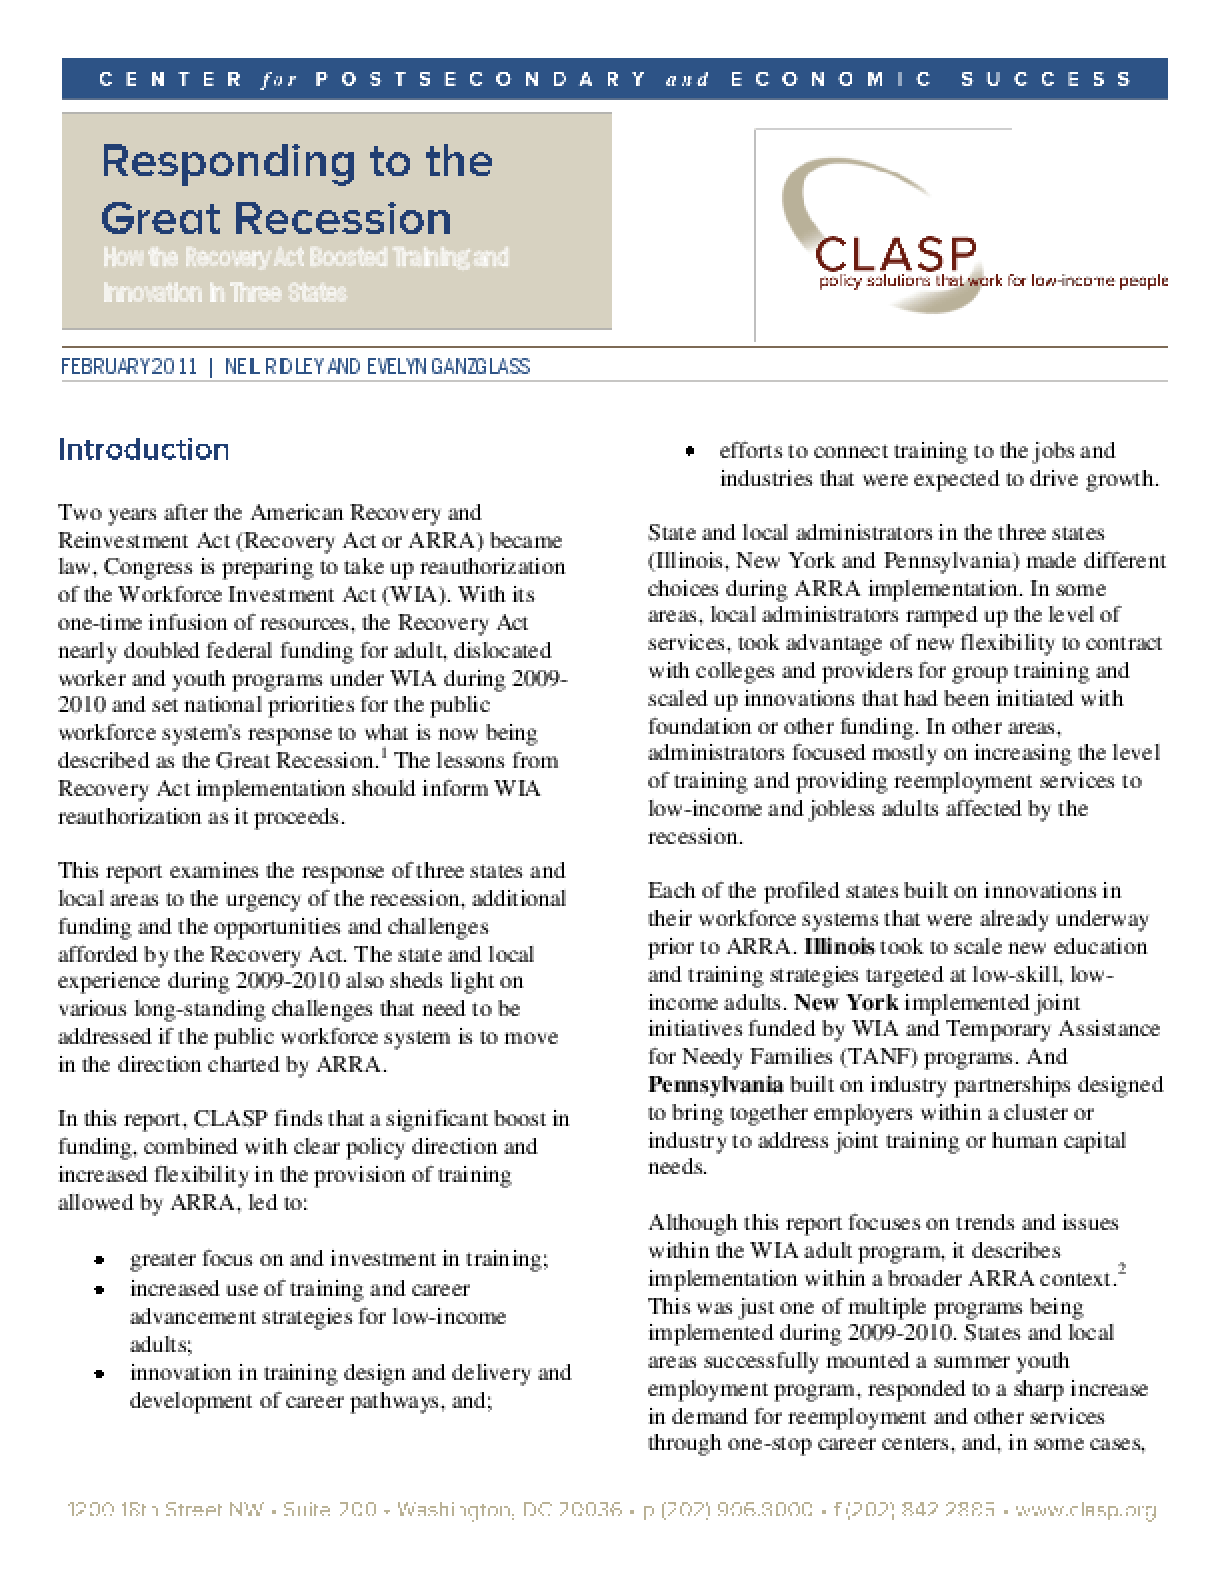 Responding to the Great Recession